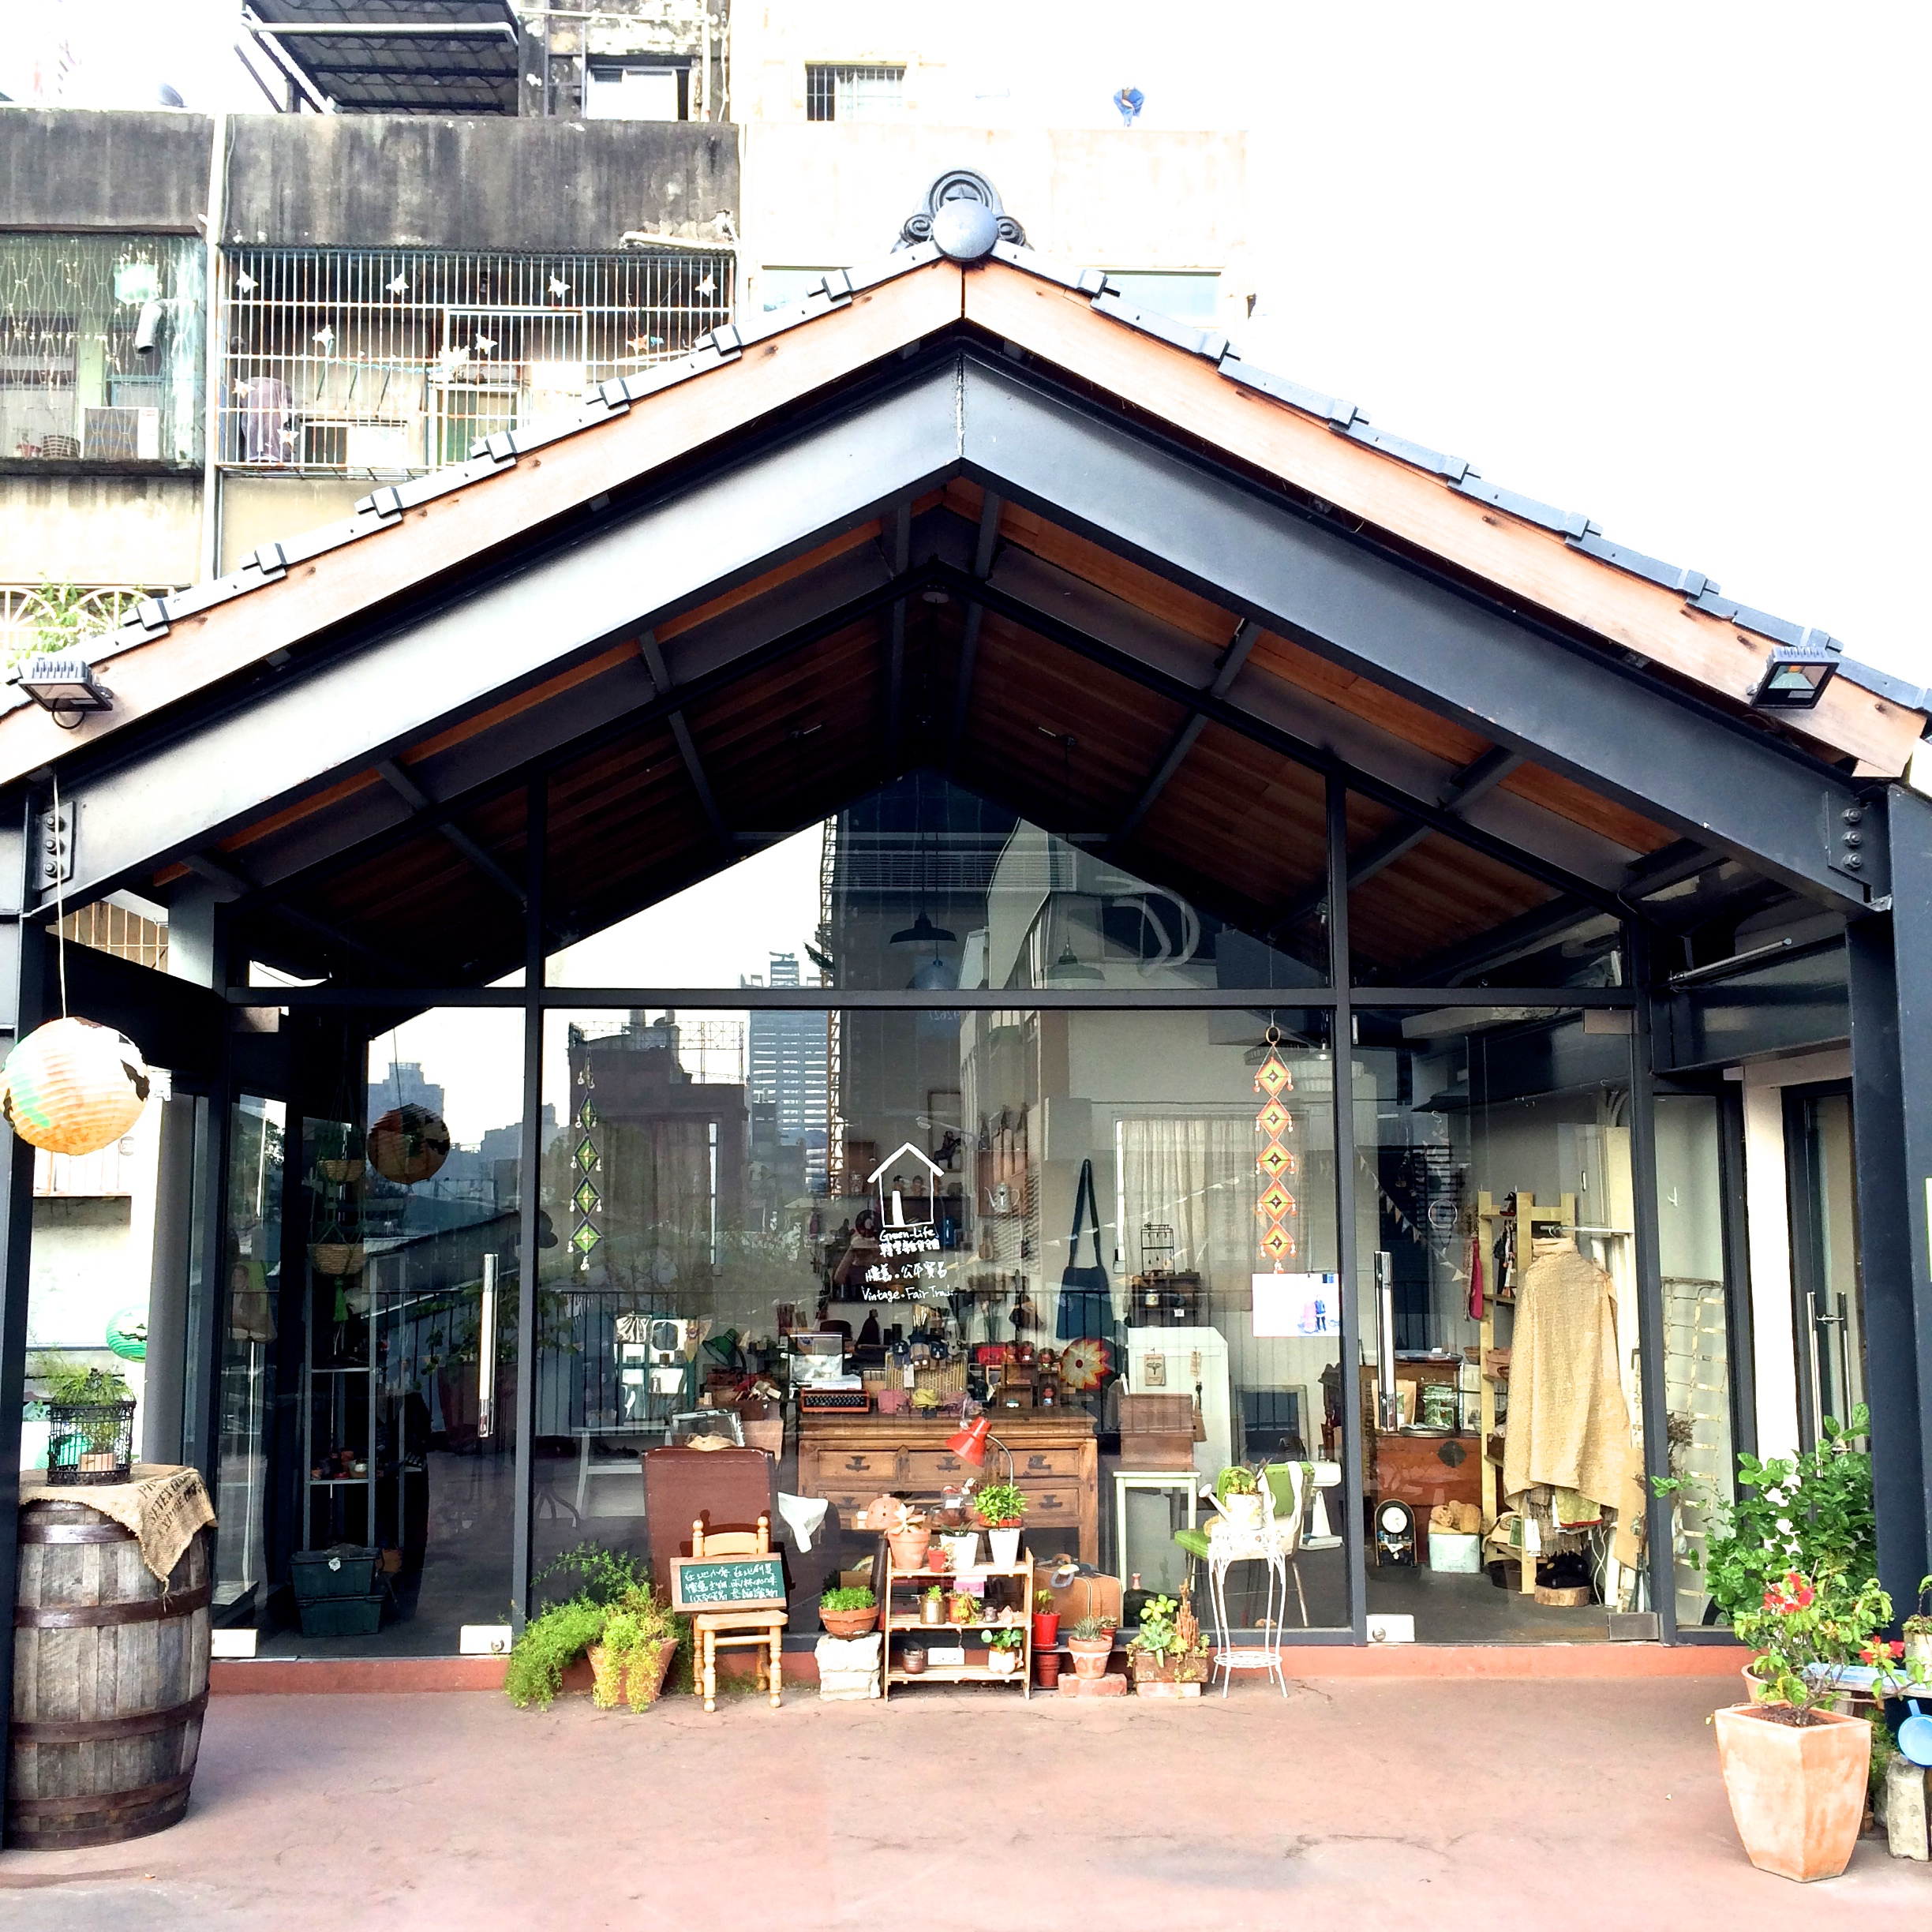 a gift shop on the second floor of the second building.